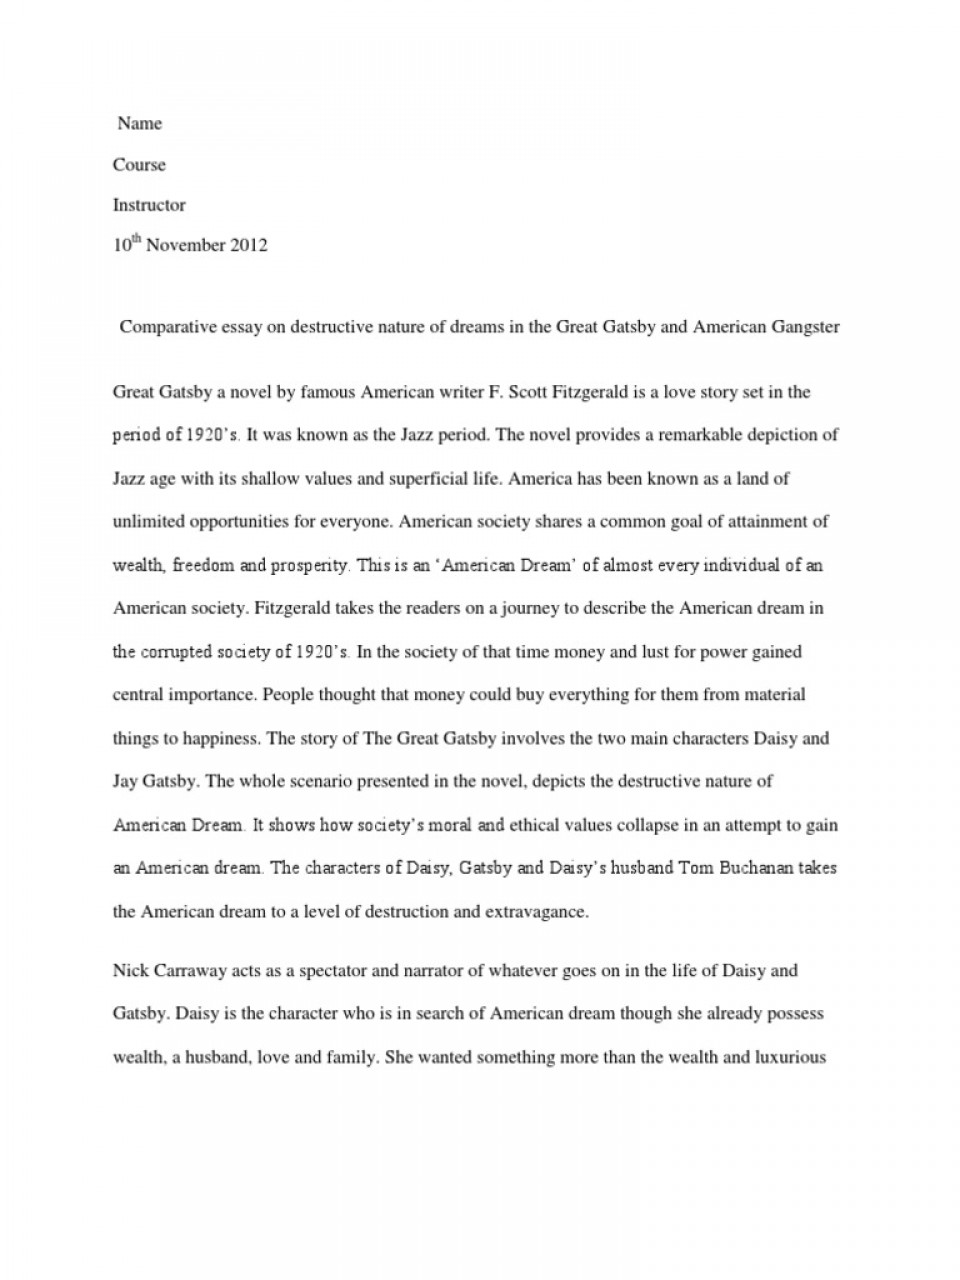 008 Comparative Essay On Destructive Nature Ofs  5884869ab6d87f259b8b49e2 Example American Unique Dream Topics Conclusion Great Gatsby Outline960